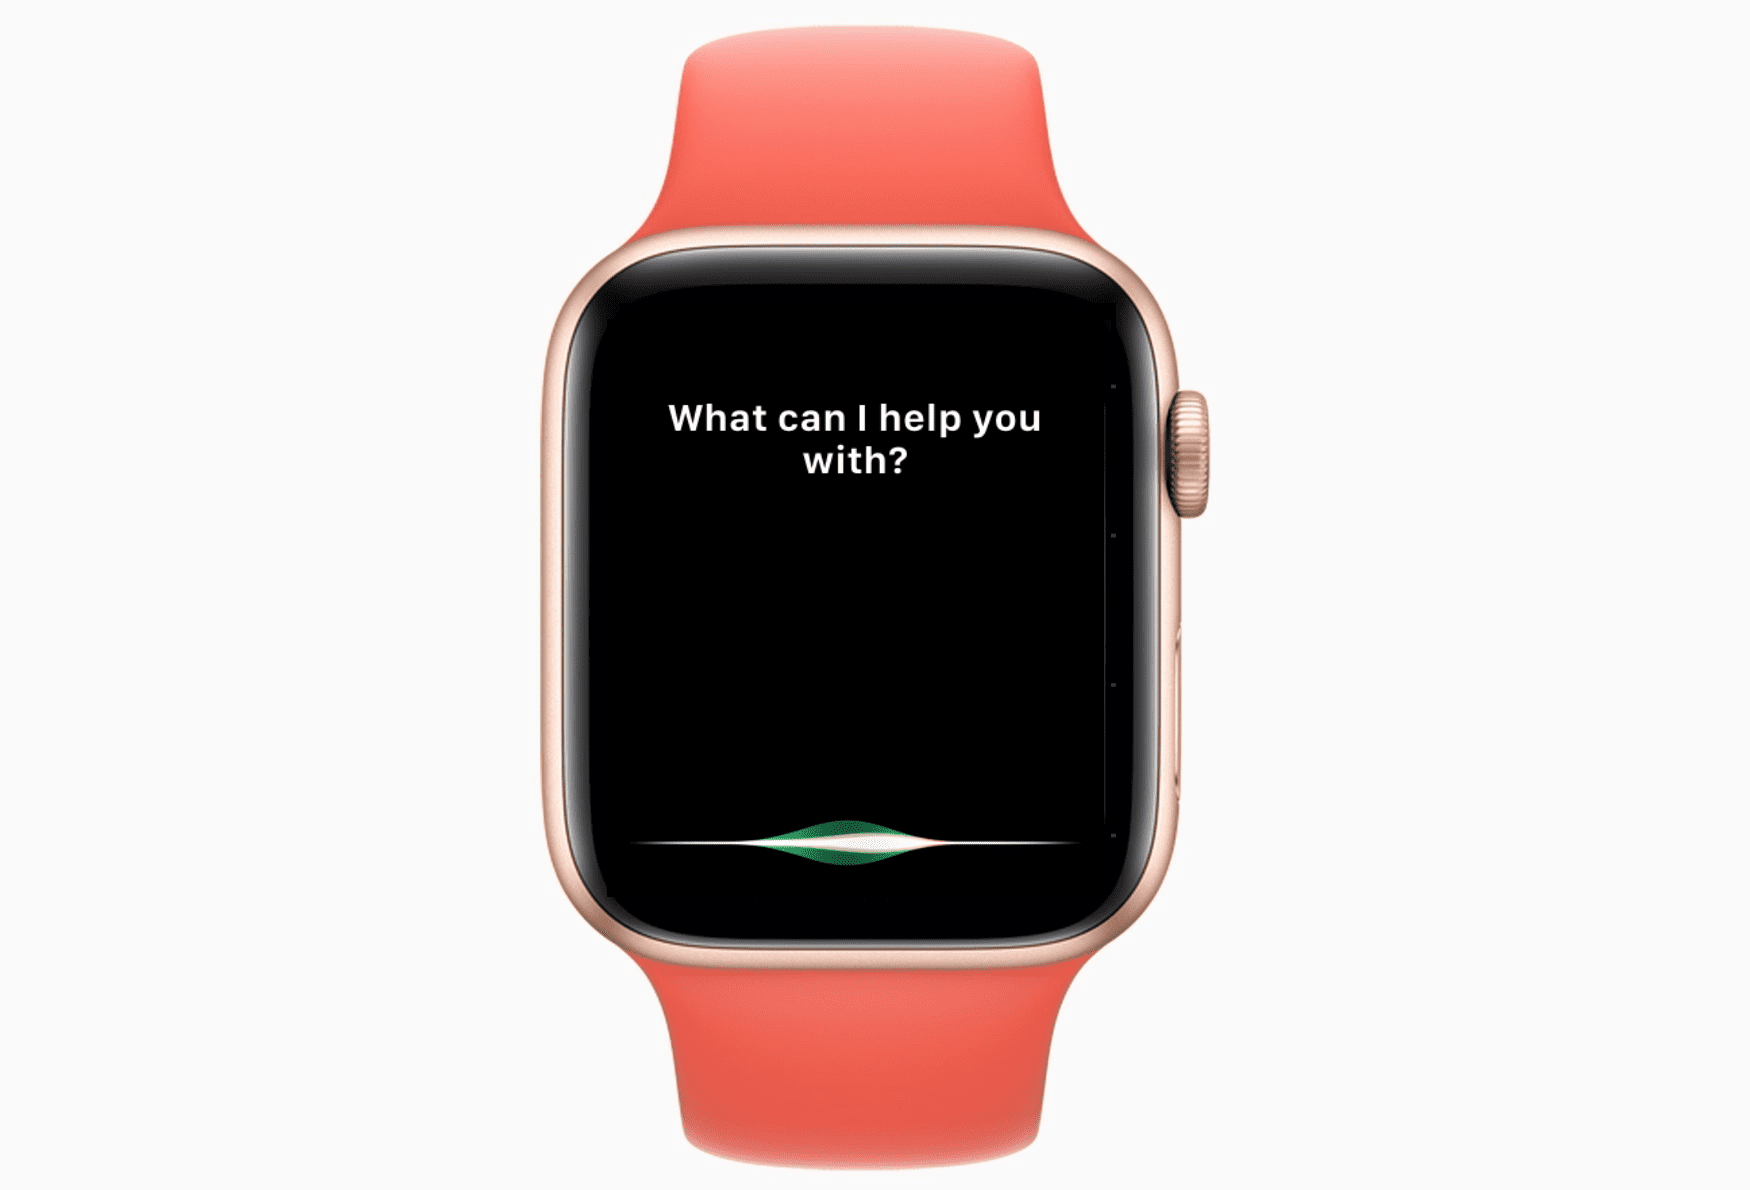 A photo of an Apple Watch with Siri